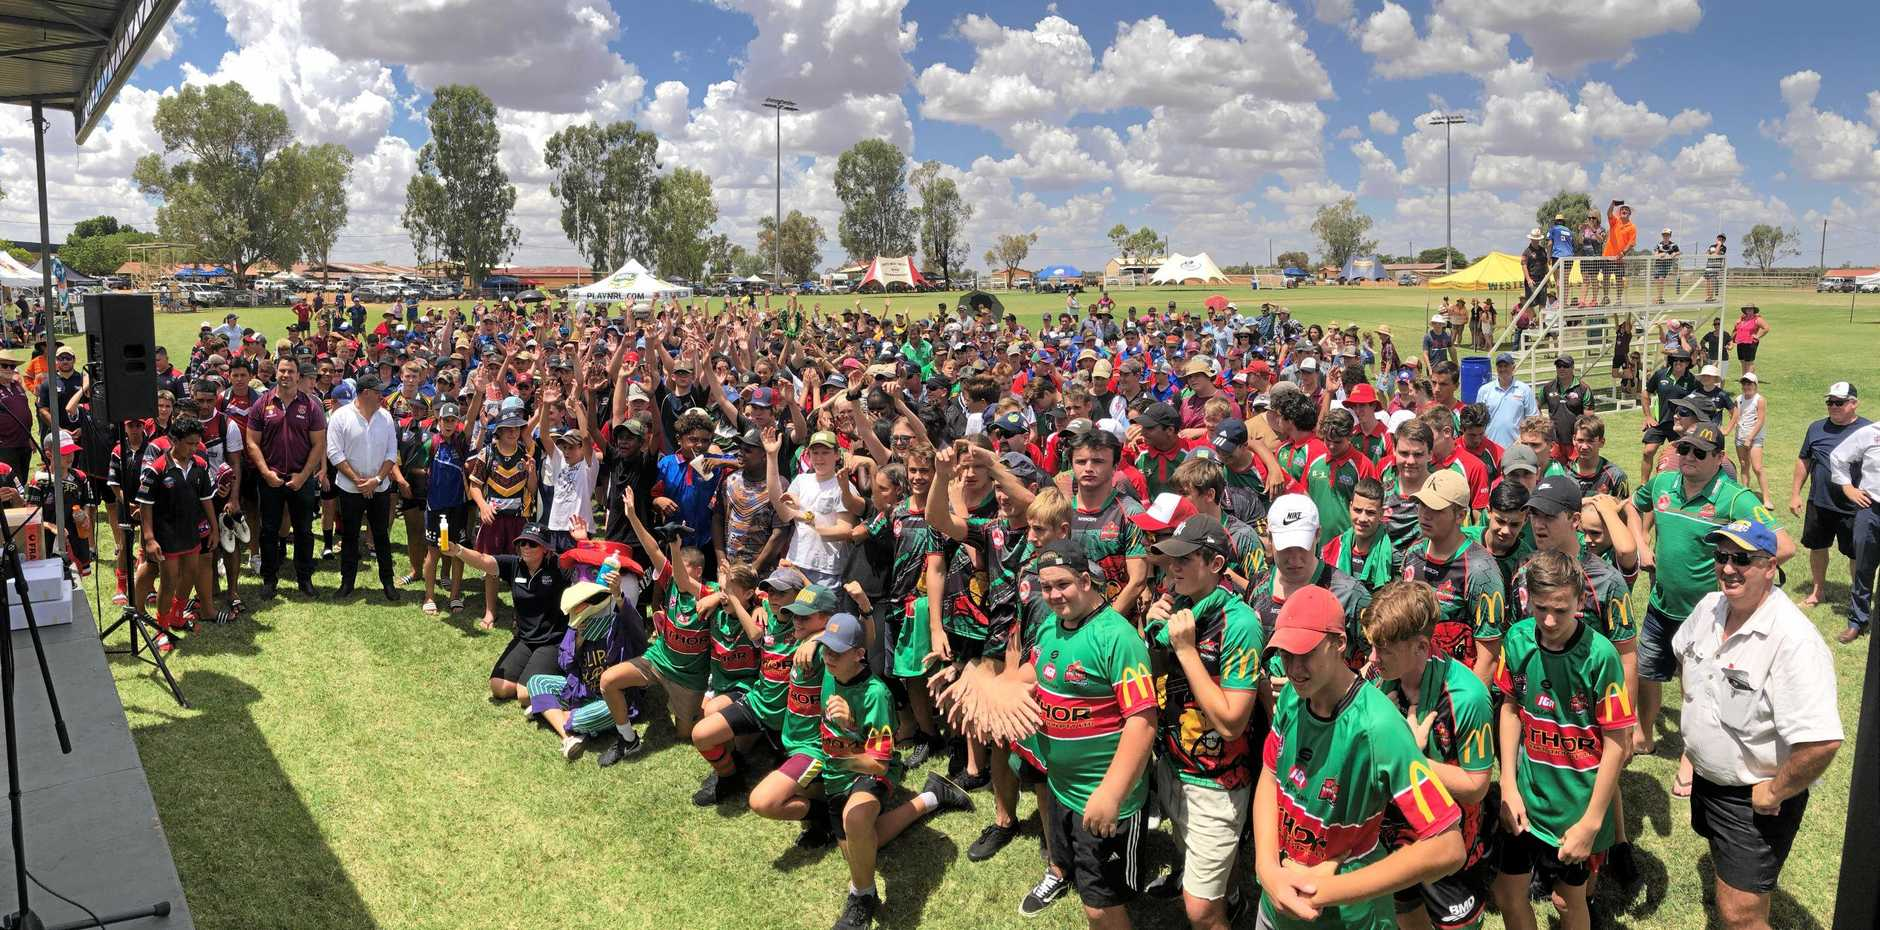 Players, coaches, parents and volunteers give a cheer for the opening of the 2019 Adrian Vowels Cup.